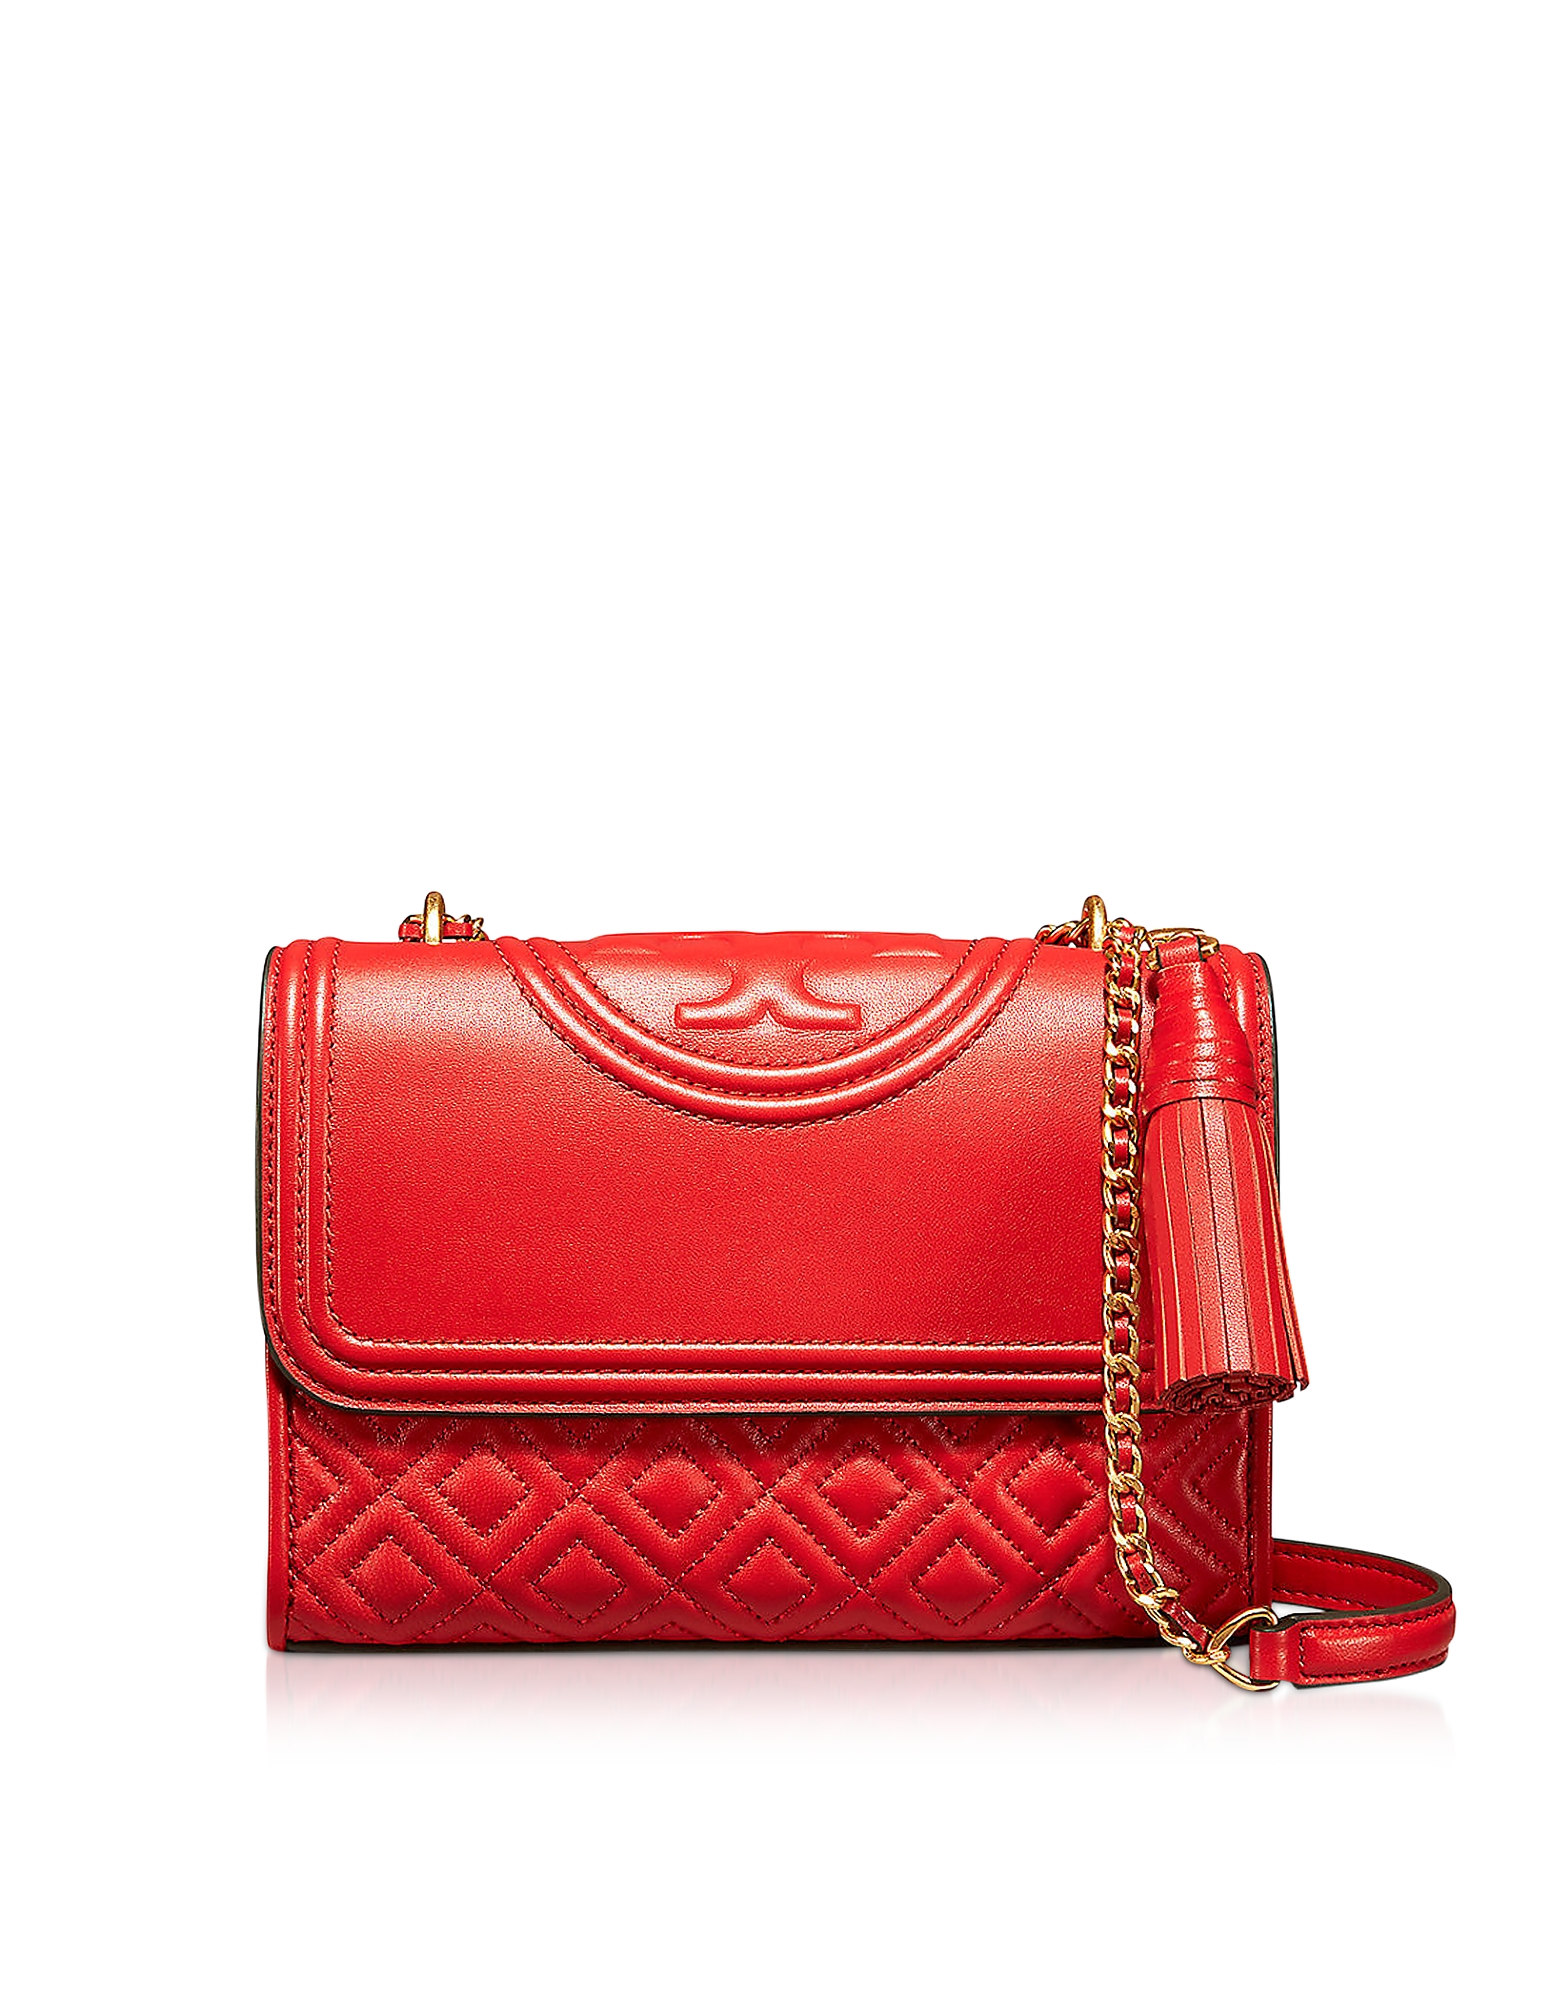 0697e67dabb Tory Burch – Fleming Exotic Red Leather Small Convertible Shoulder Bag